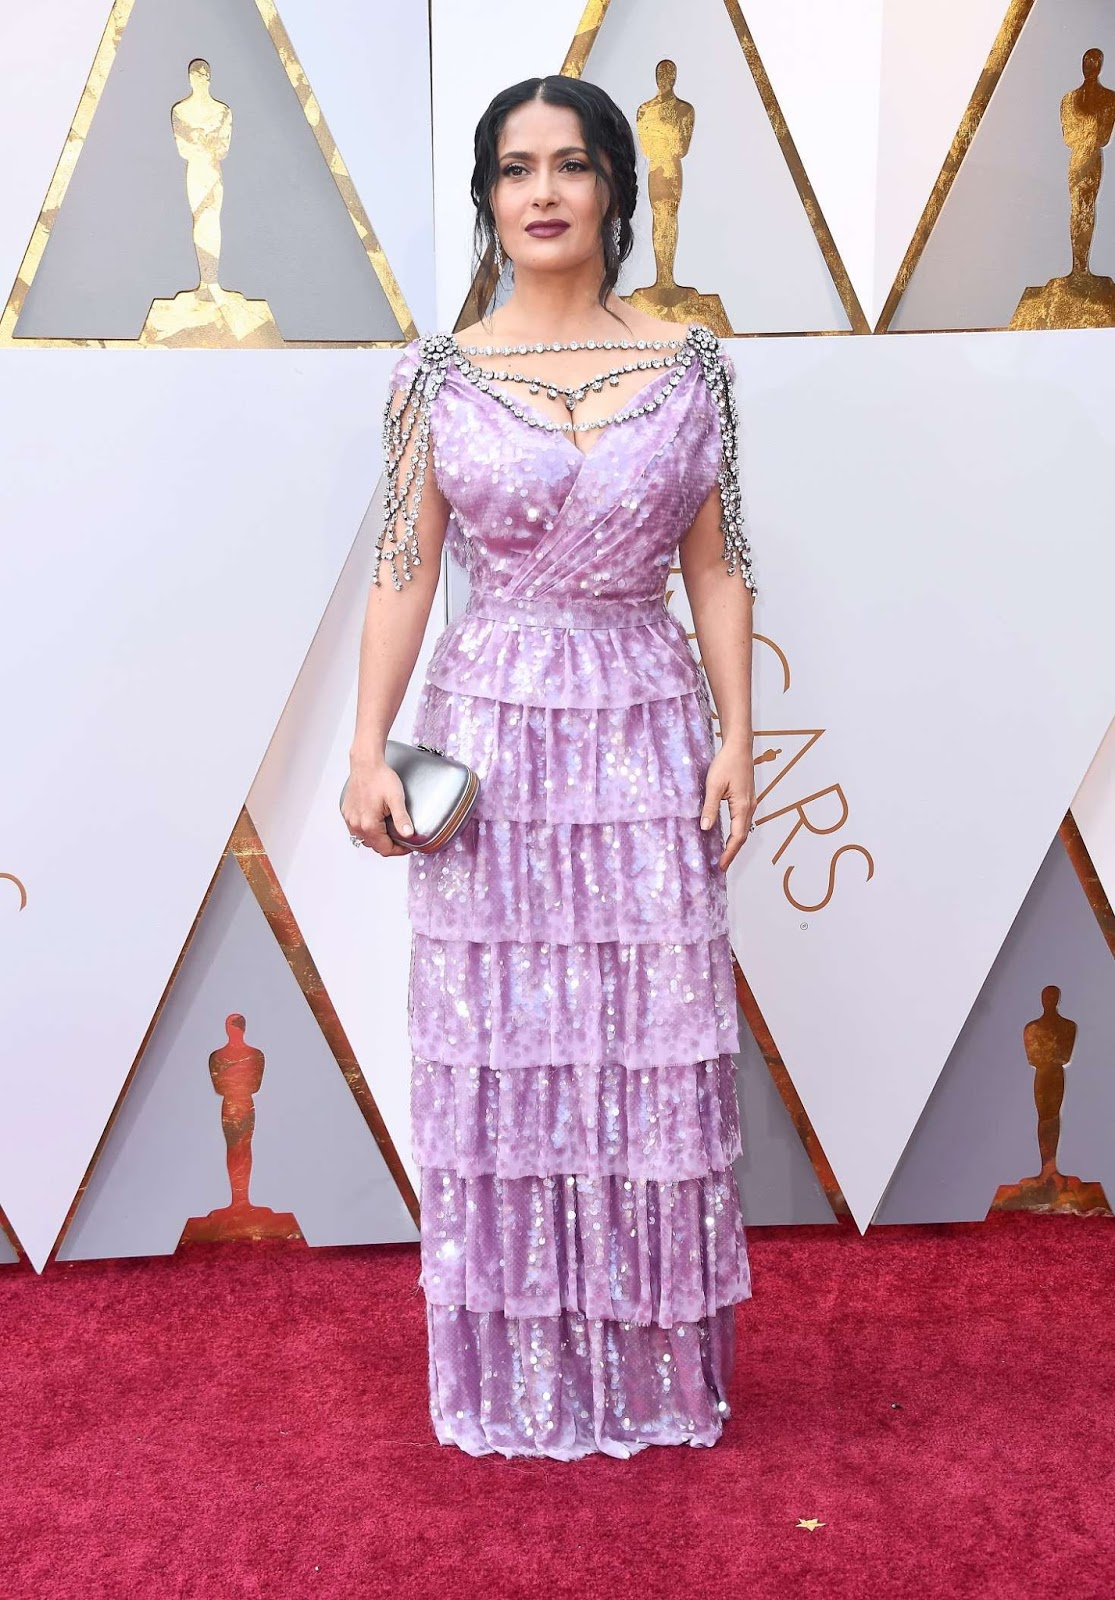 Salma Hayek turns up the glam factor at the 2018 Oscars